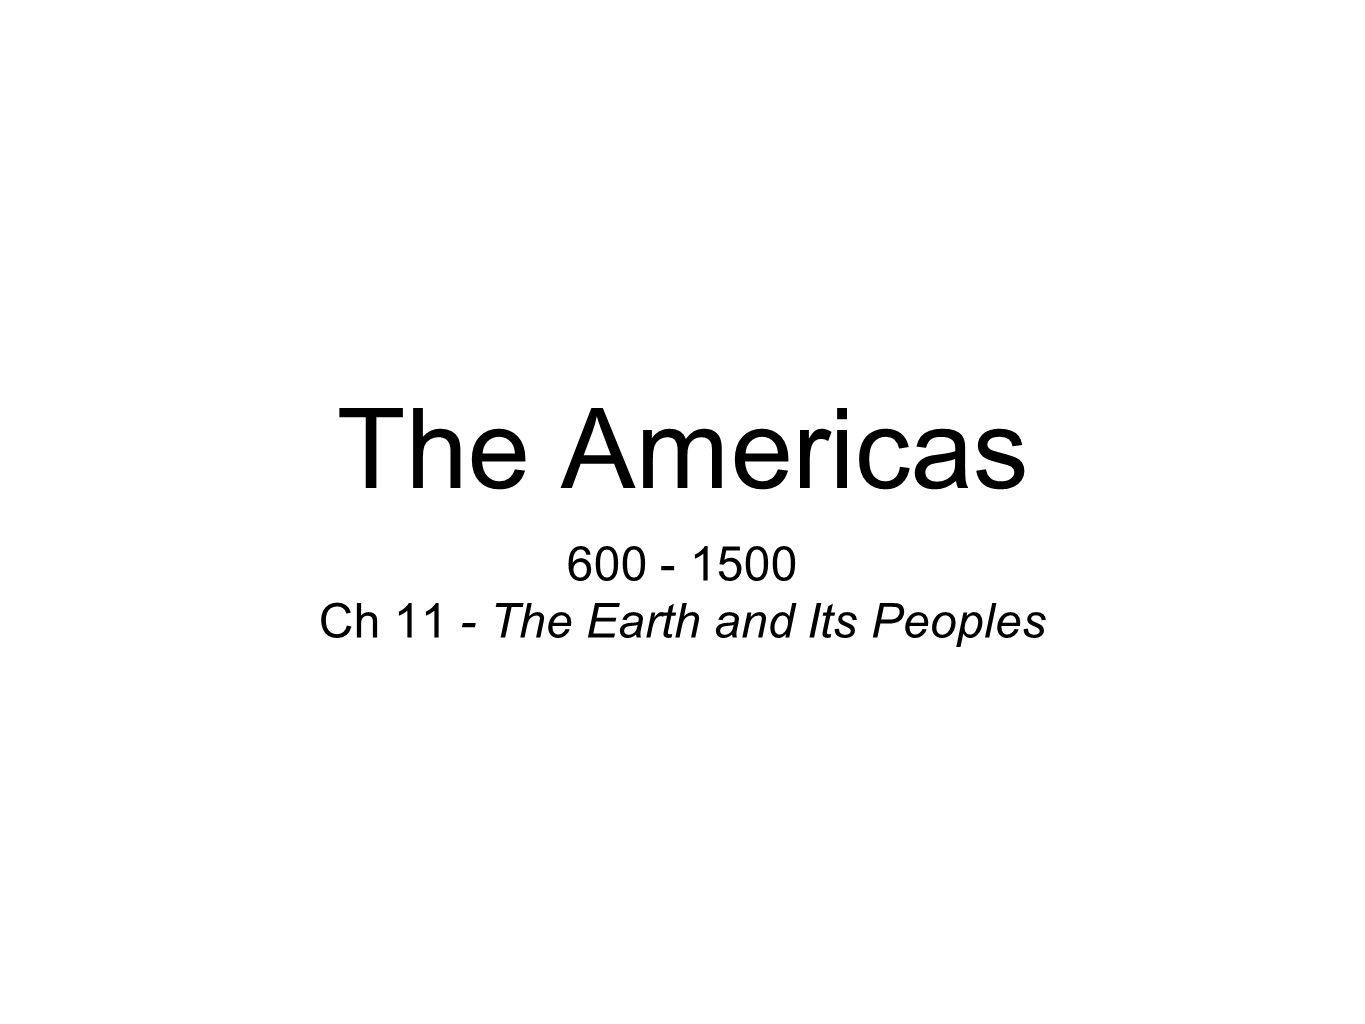 The Americas Ch 11 - The Earth and Its Peoples